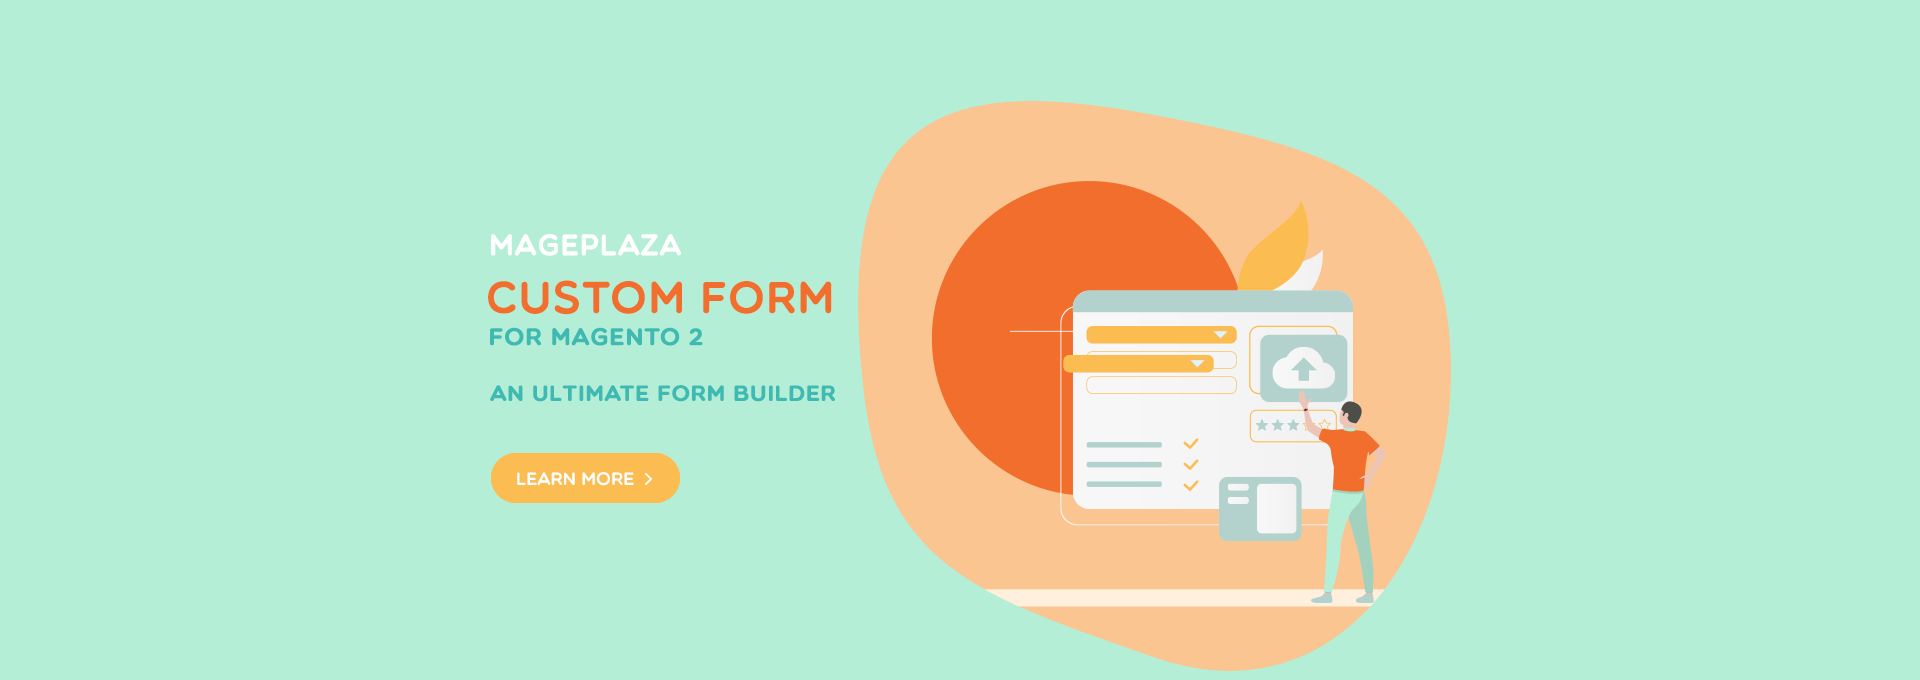 How to create Custom Contact Form in Magento 2 frontend with module?